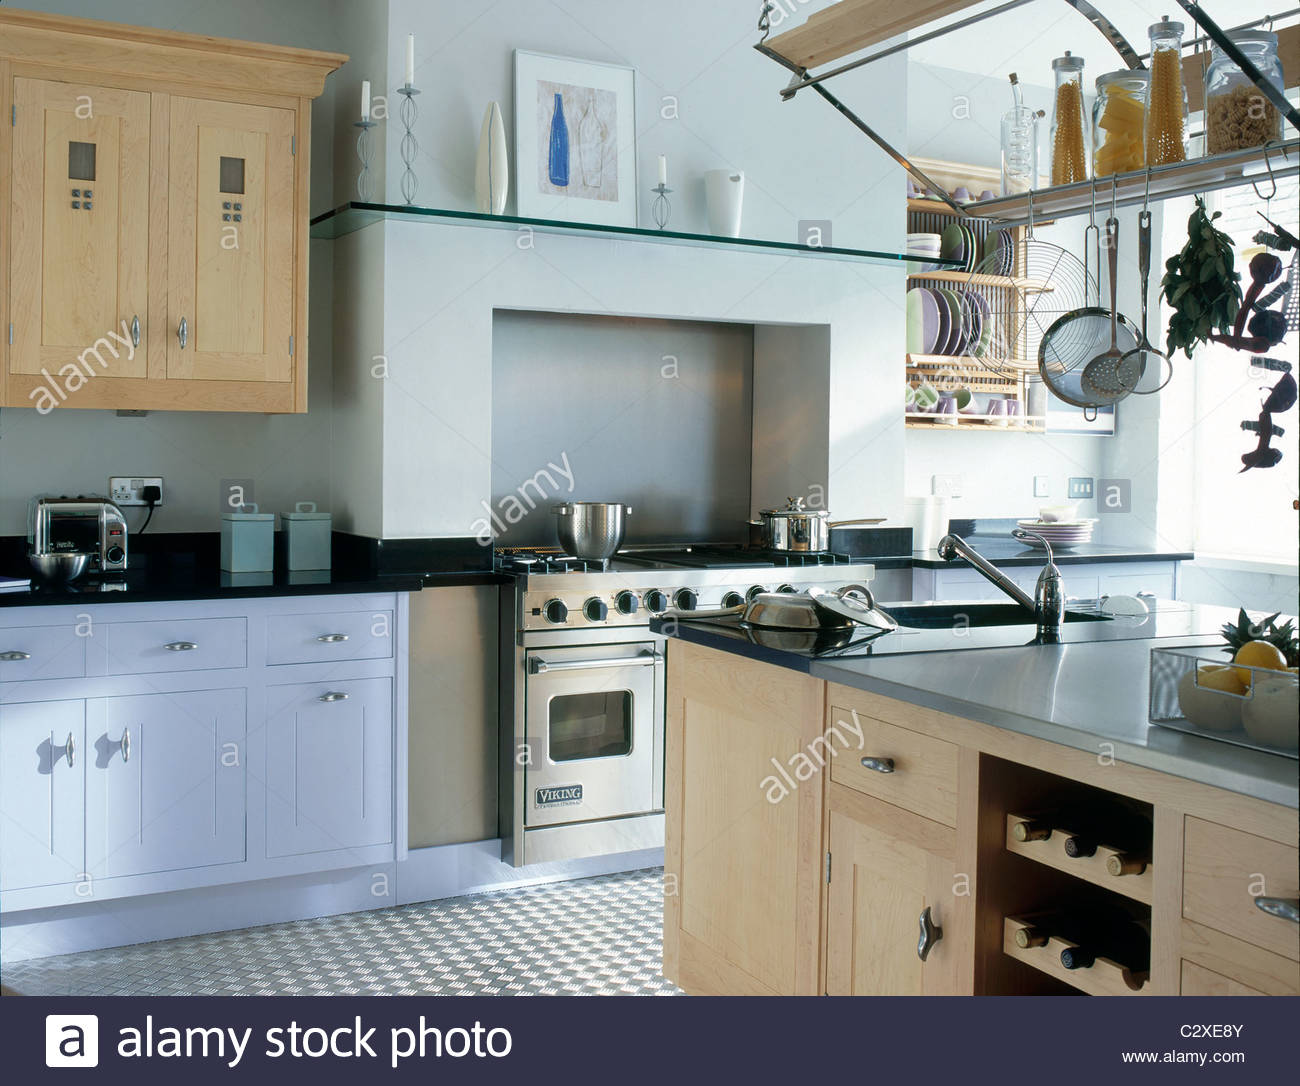 Central Island Unit Stock Photos & Central Island Unit Stock Images ...